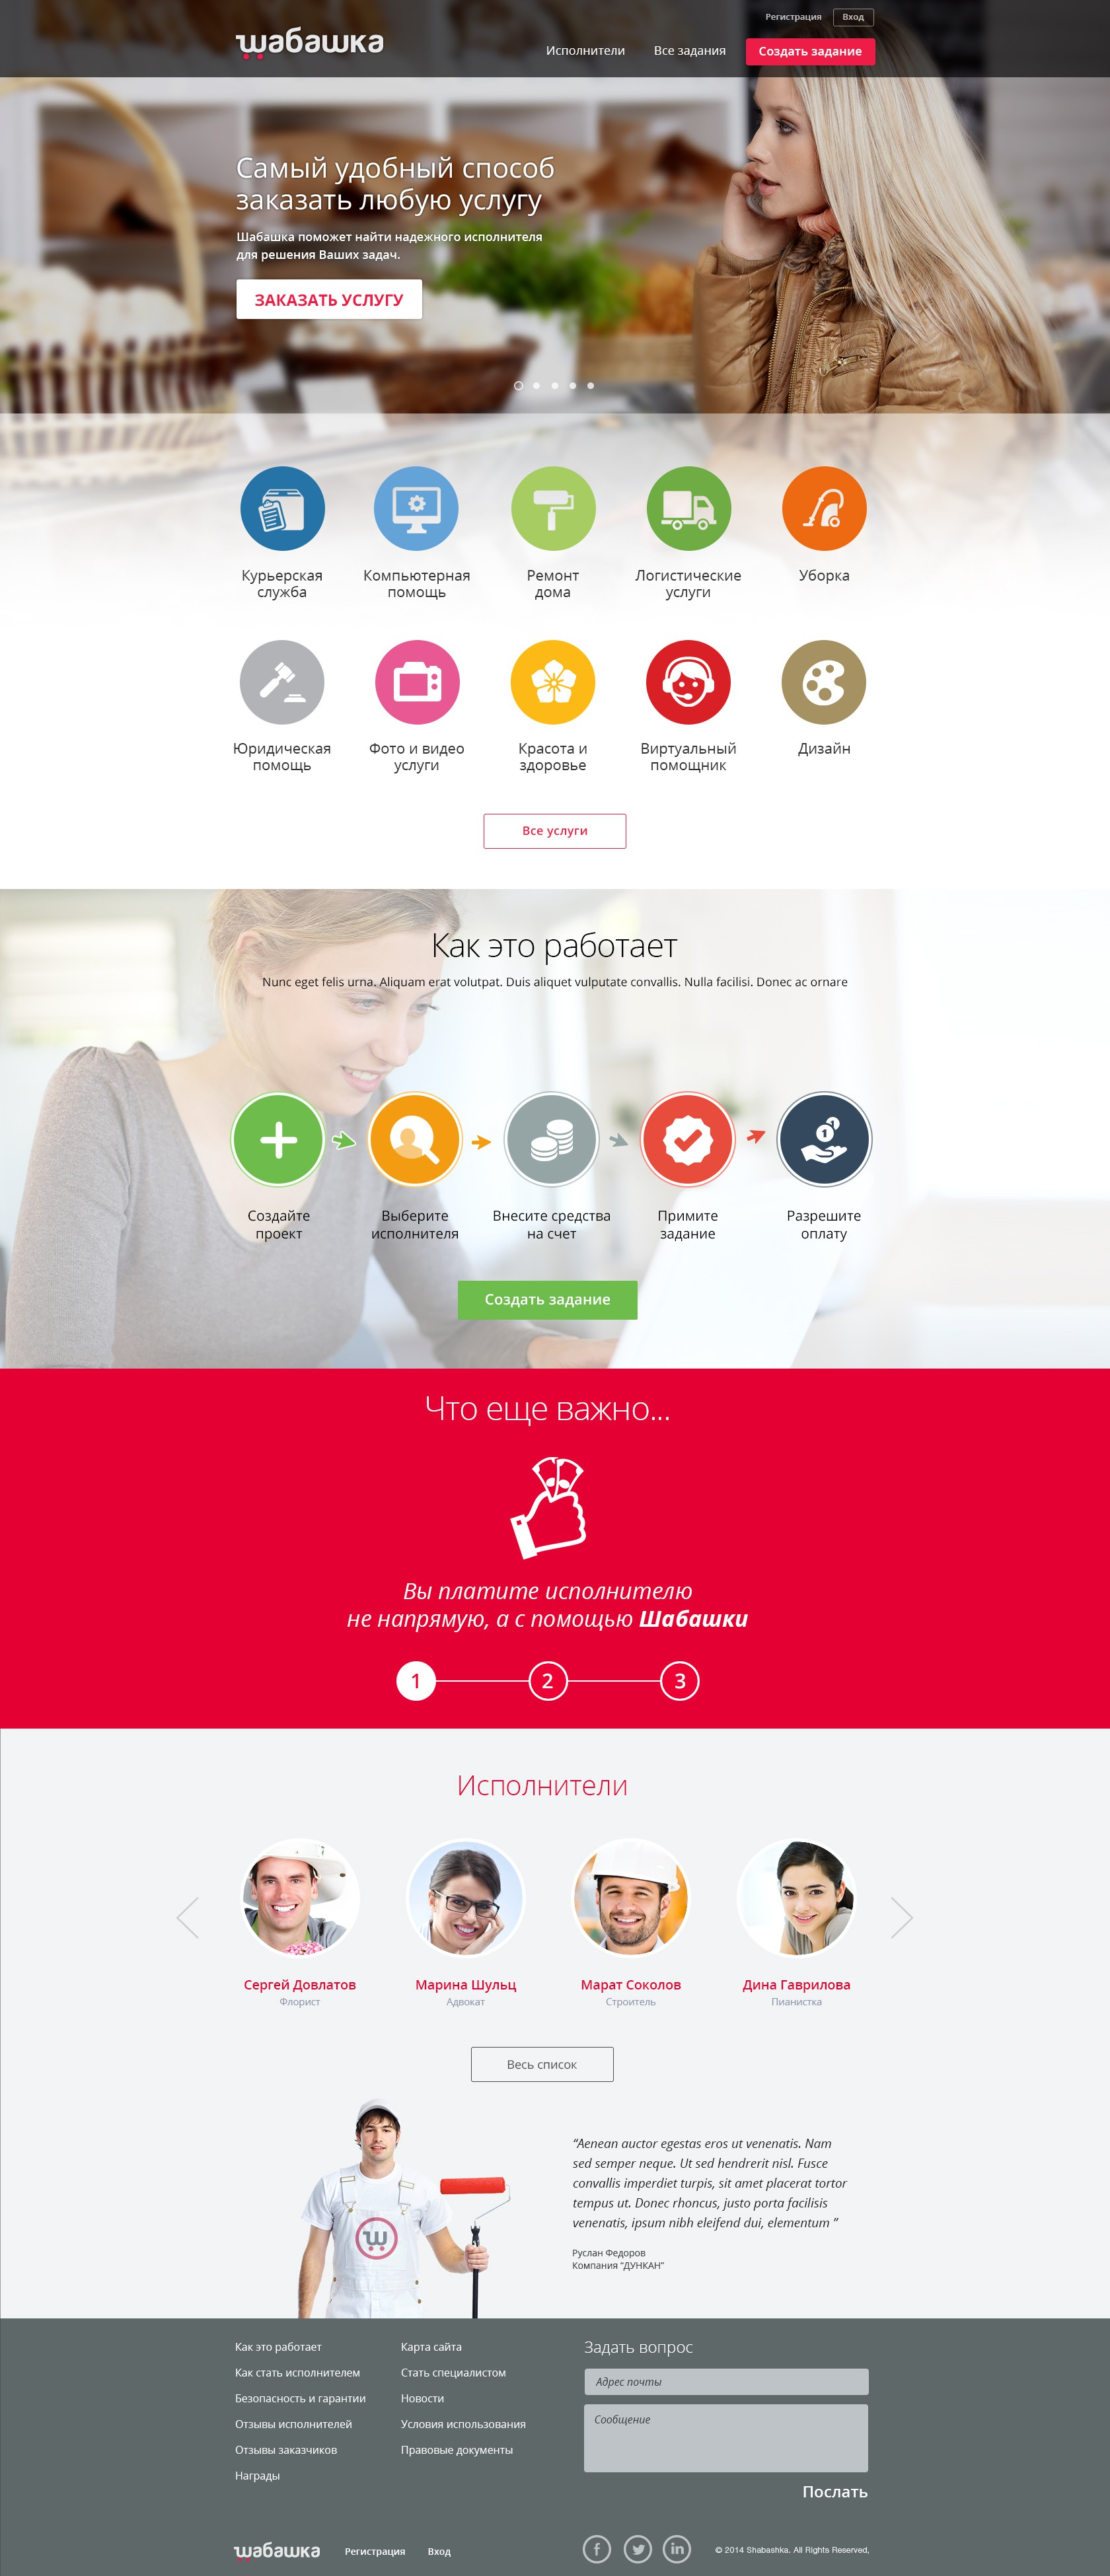 Design for one-time job assignments escrow-service website (Bootstrap 3 based)